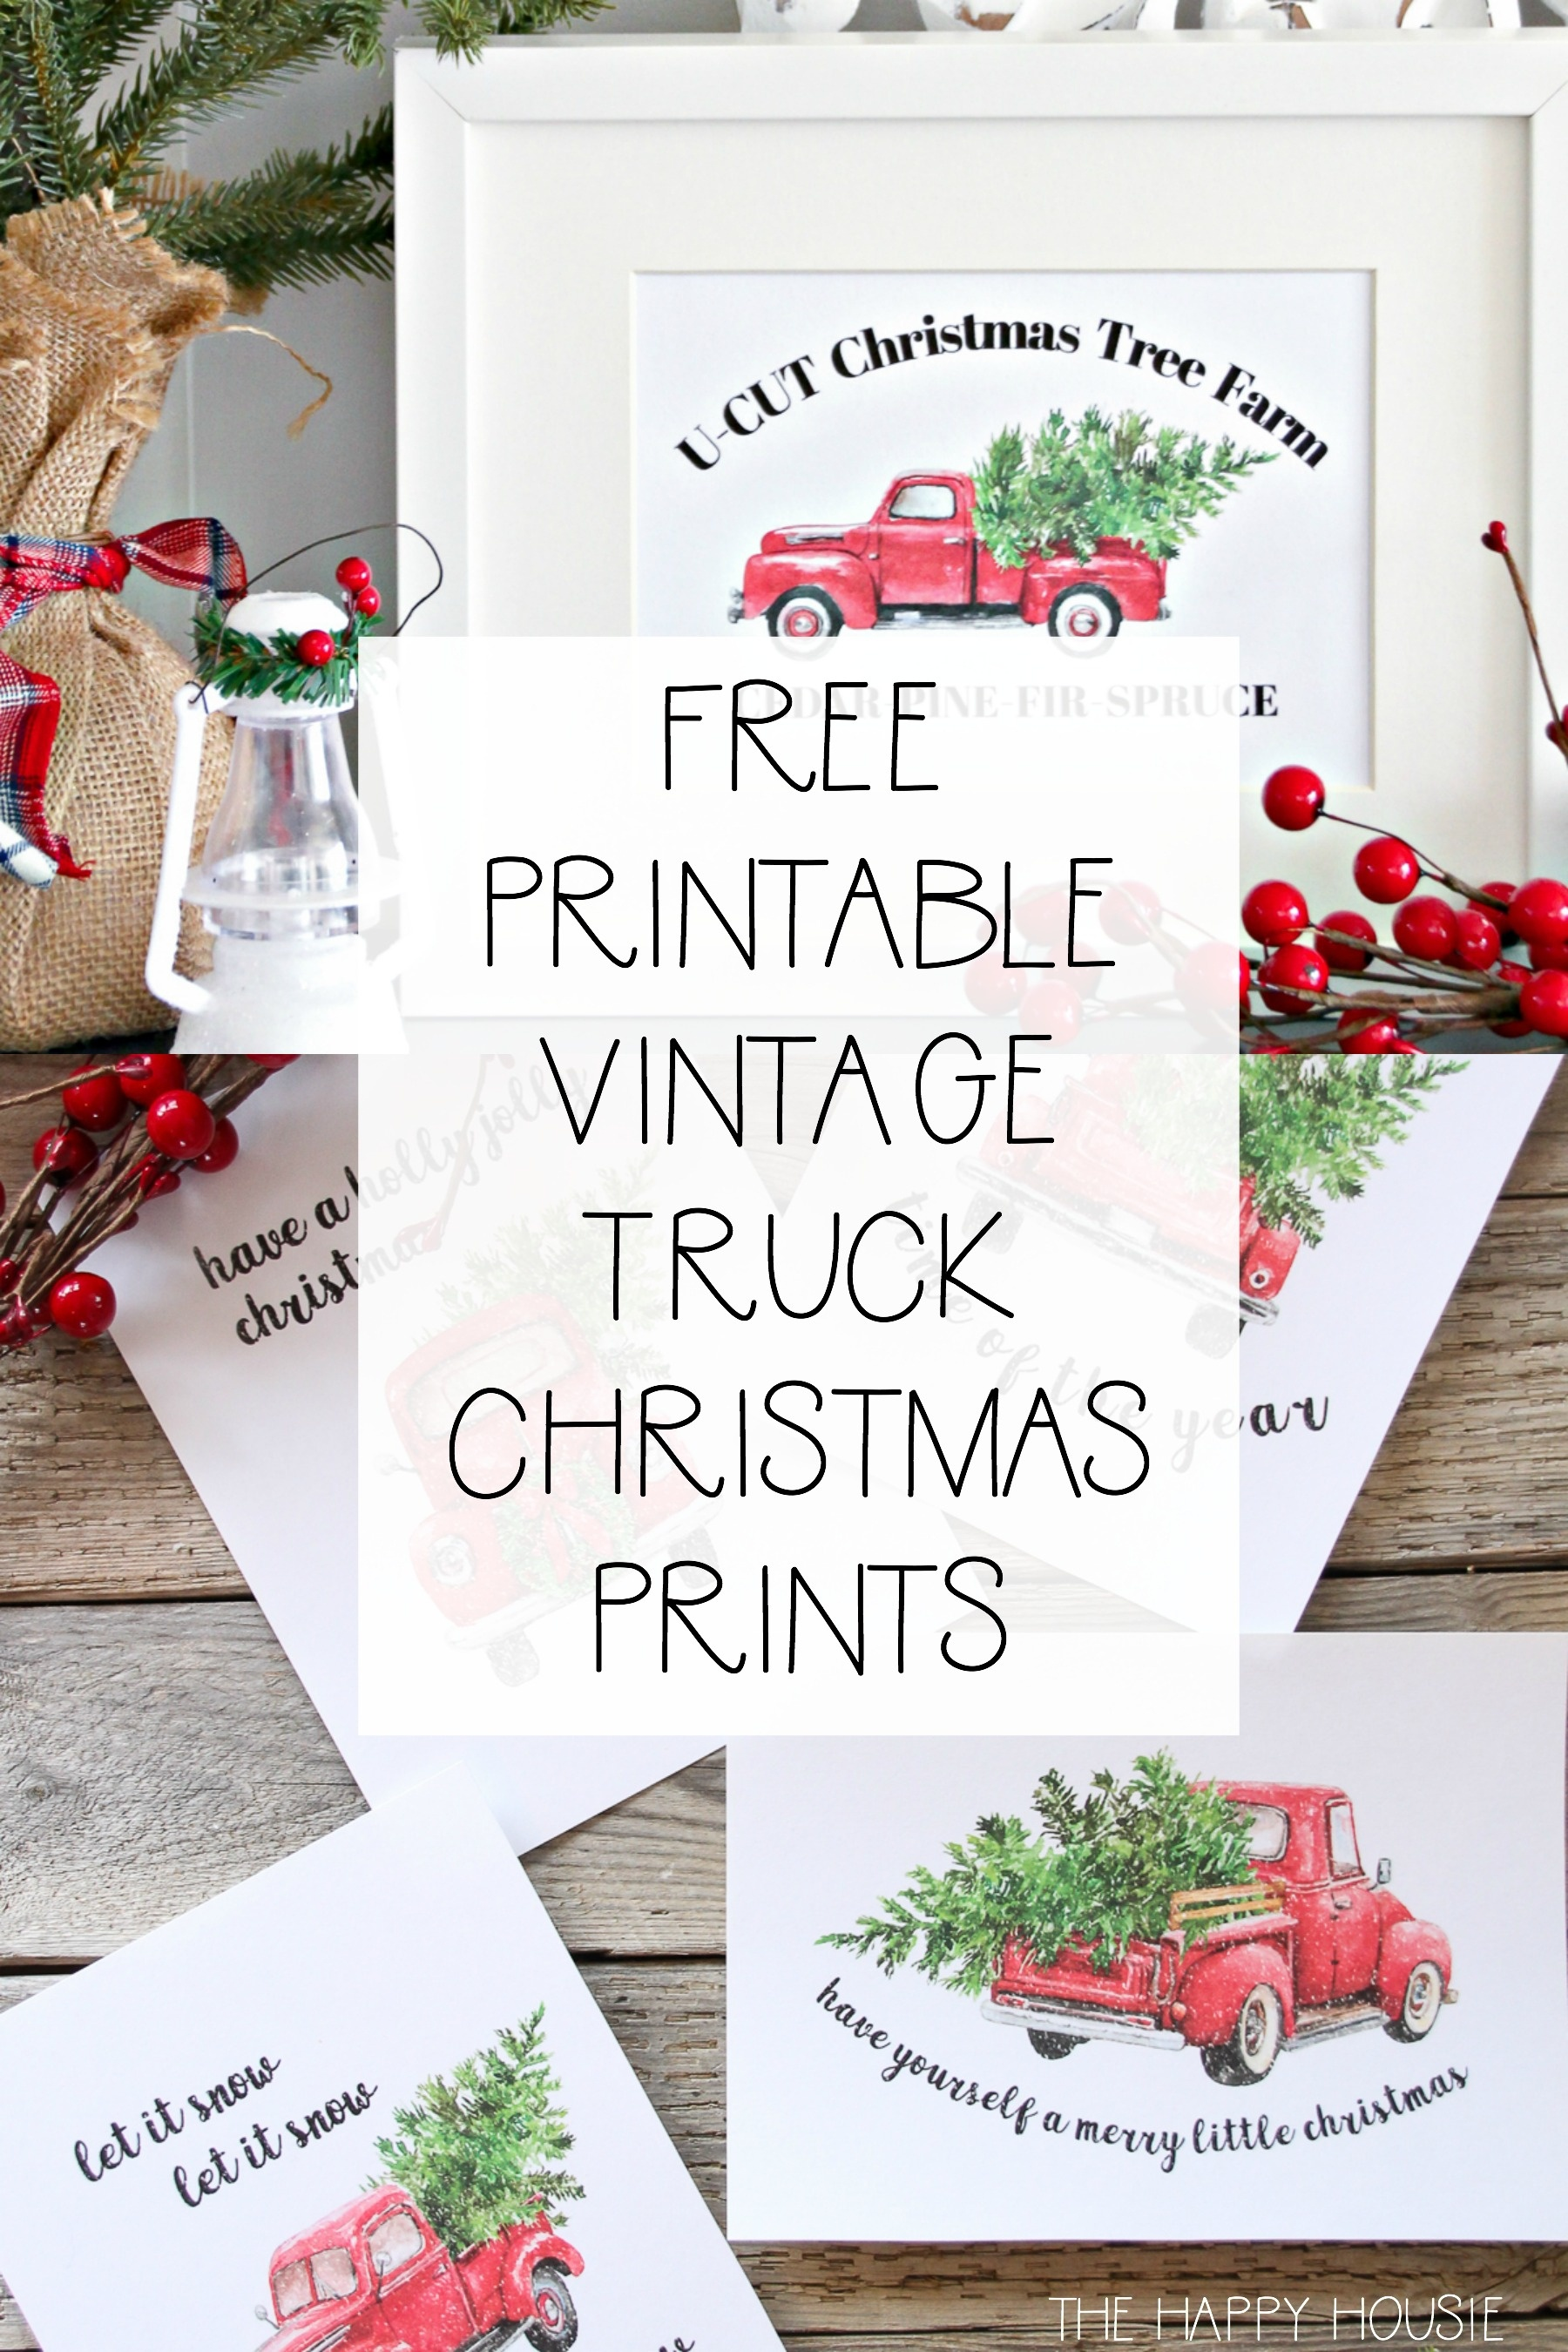 5 Free Vintage Truck Christmas Printables | The Happy Housie - Free Printable Vintage Christmas Images